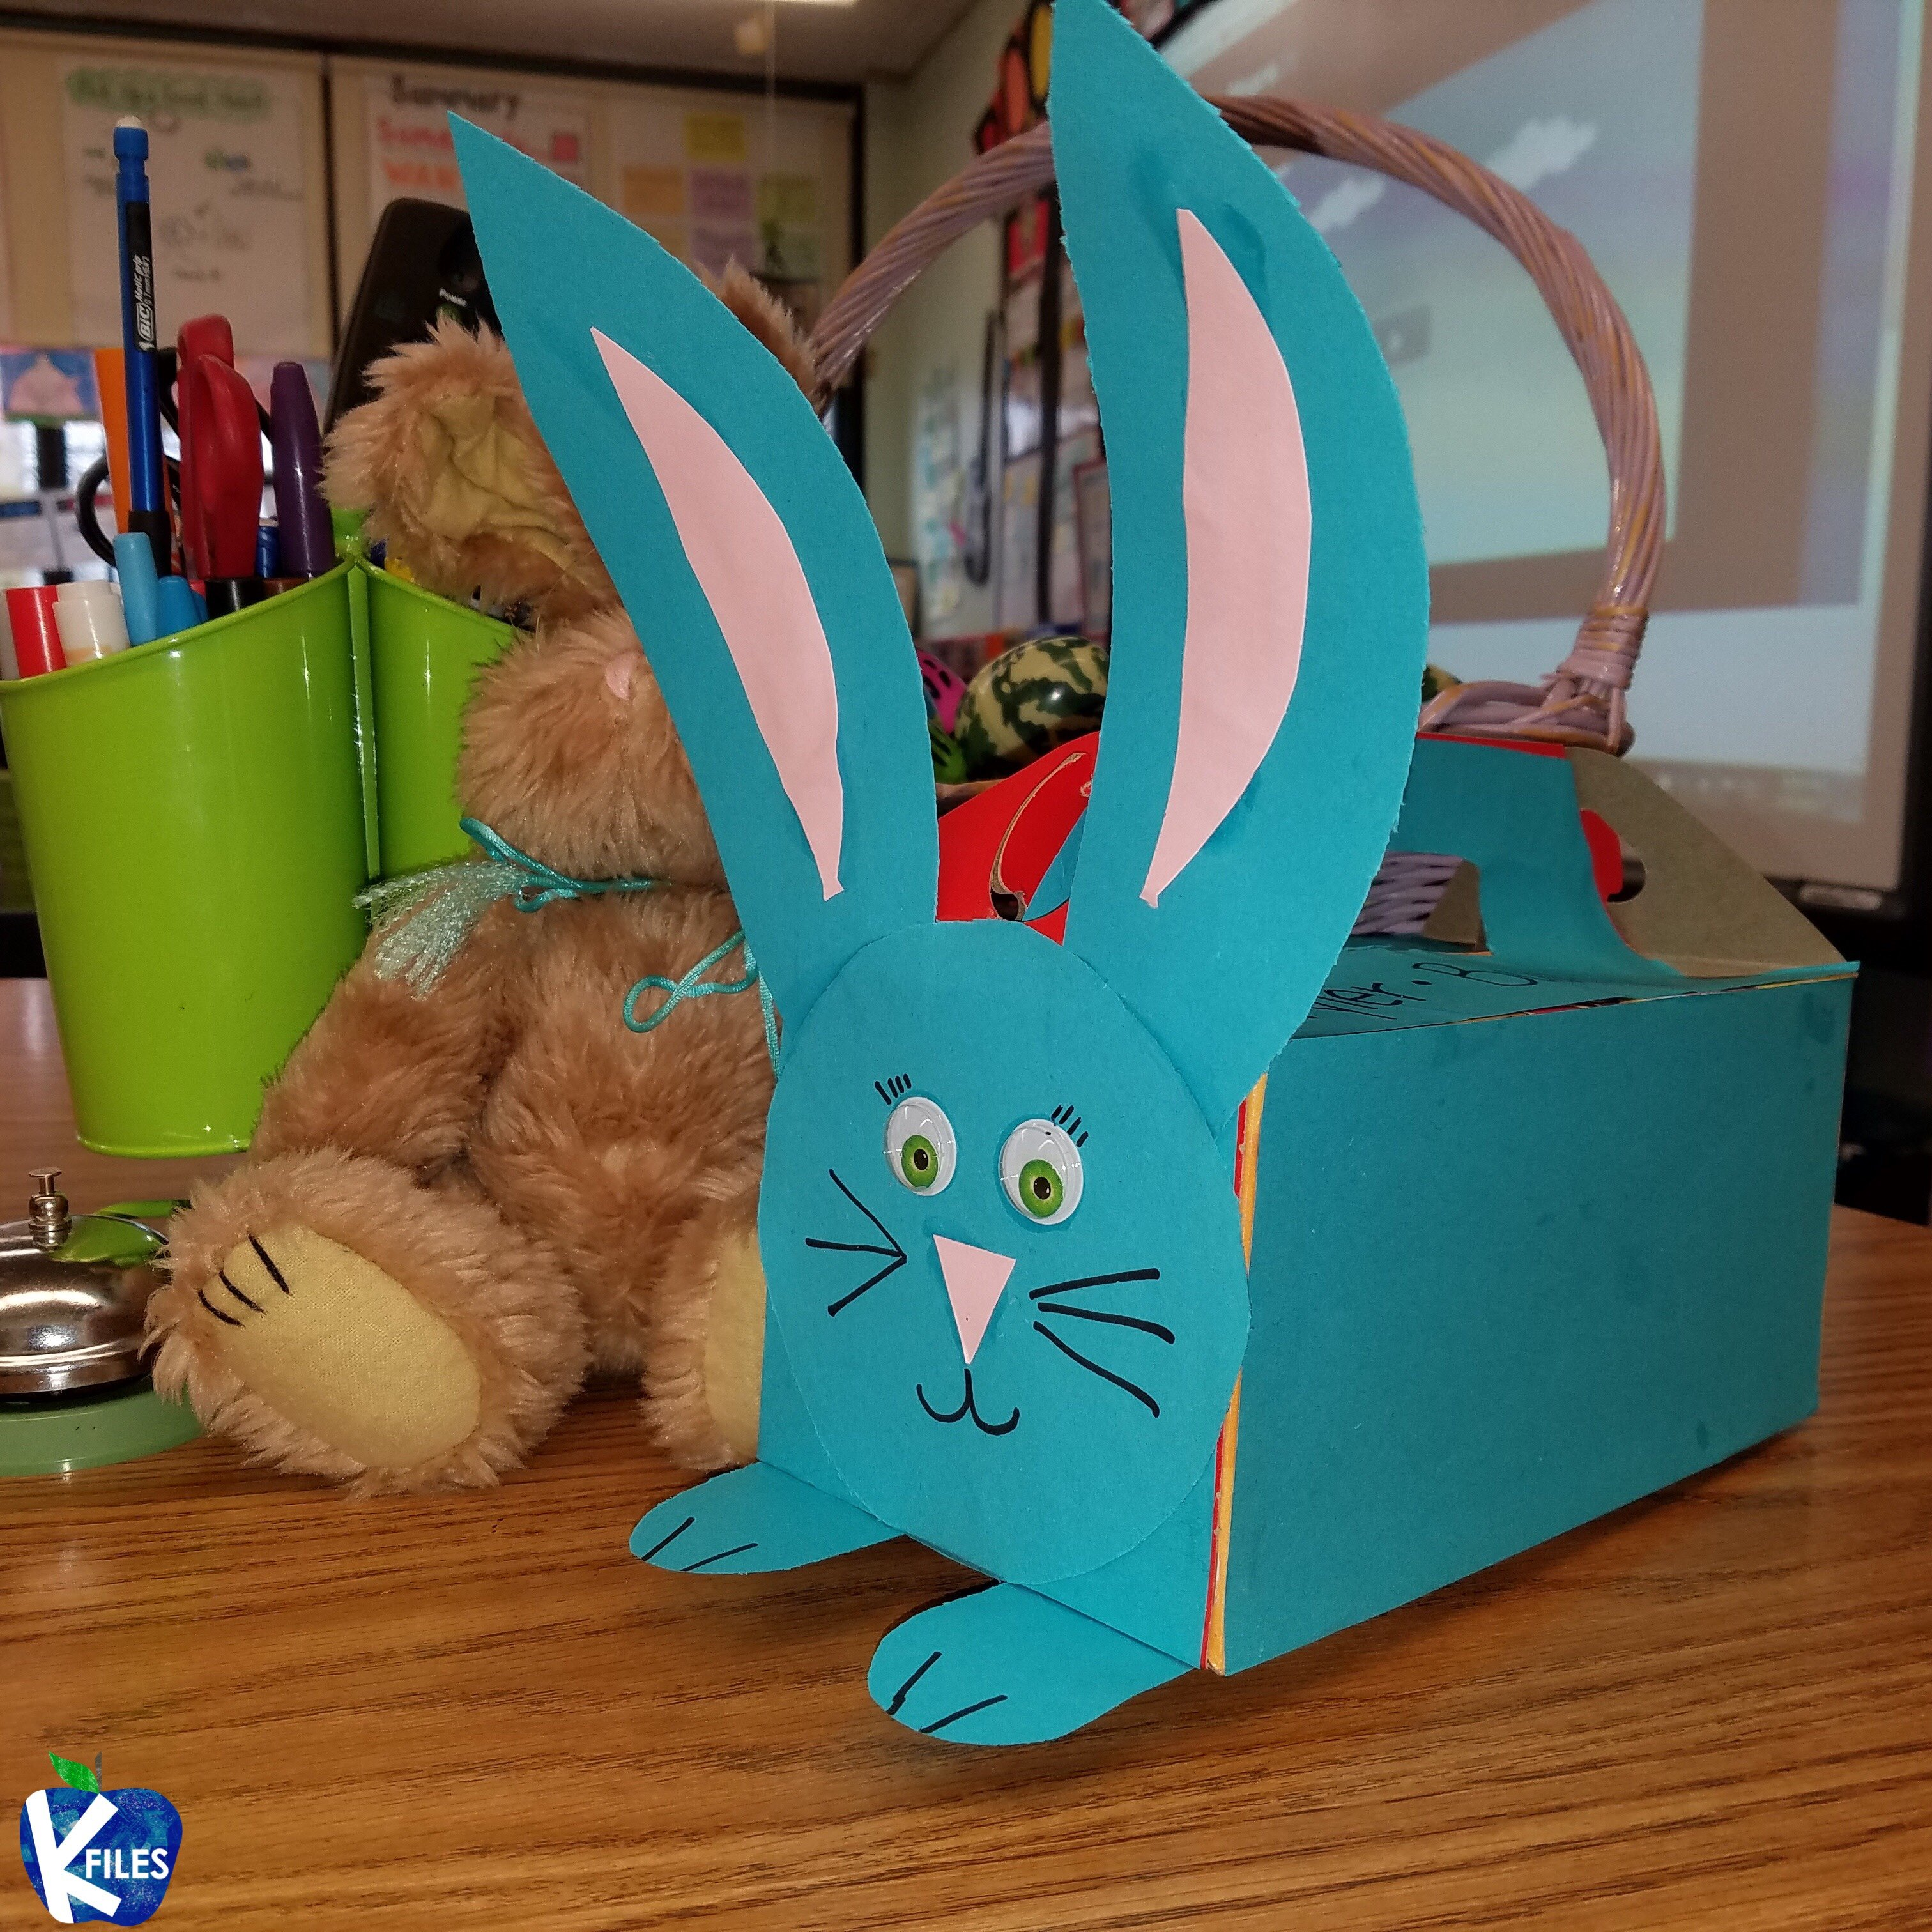 Turn a Timbits box into an Easter Basket!